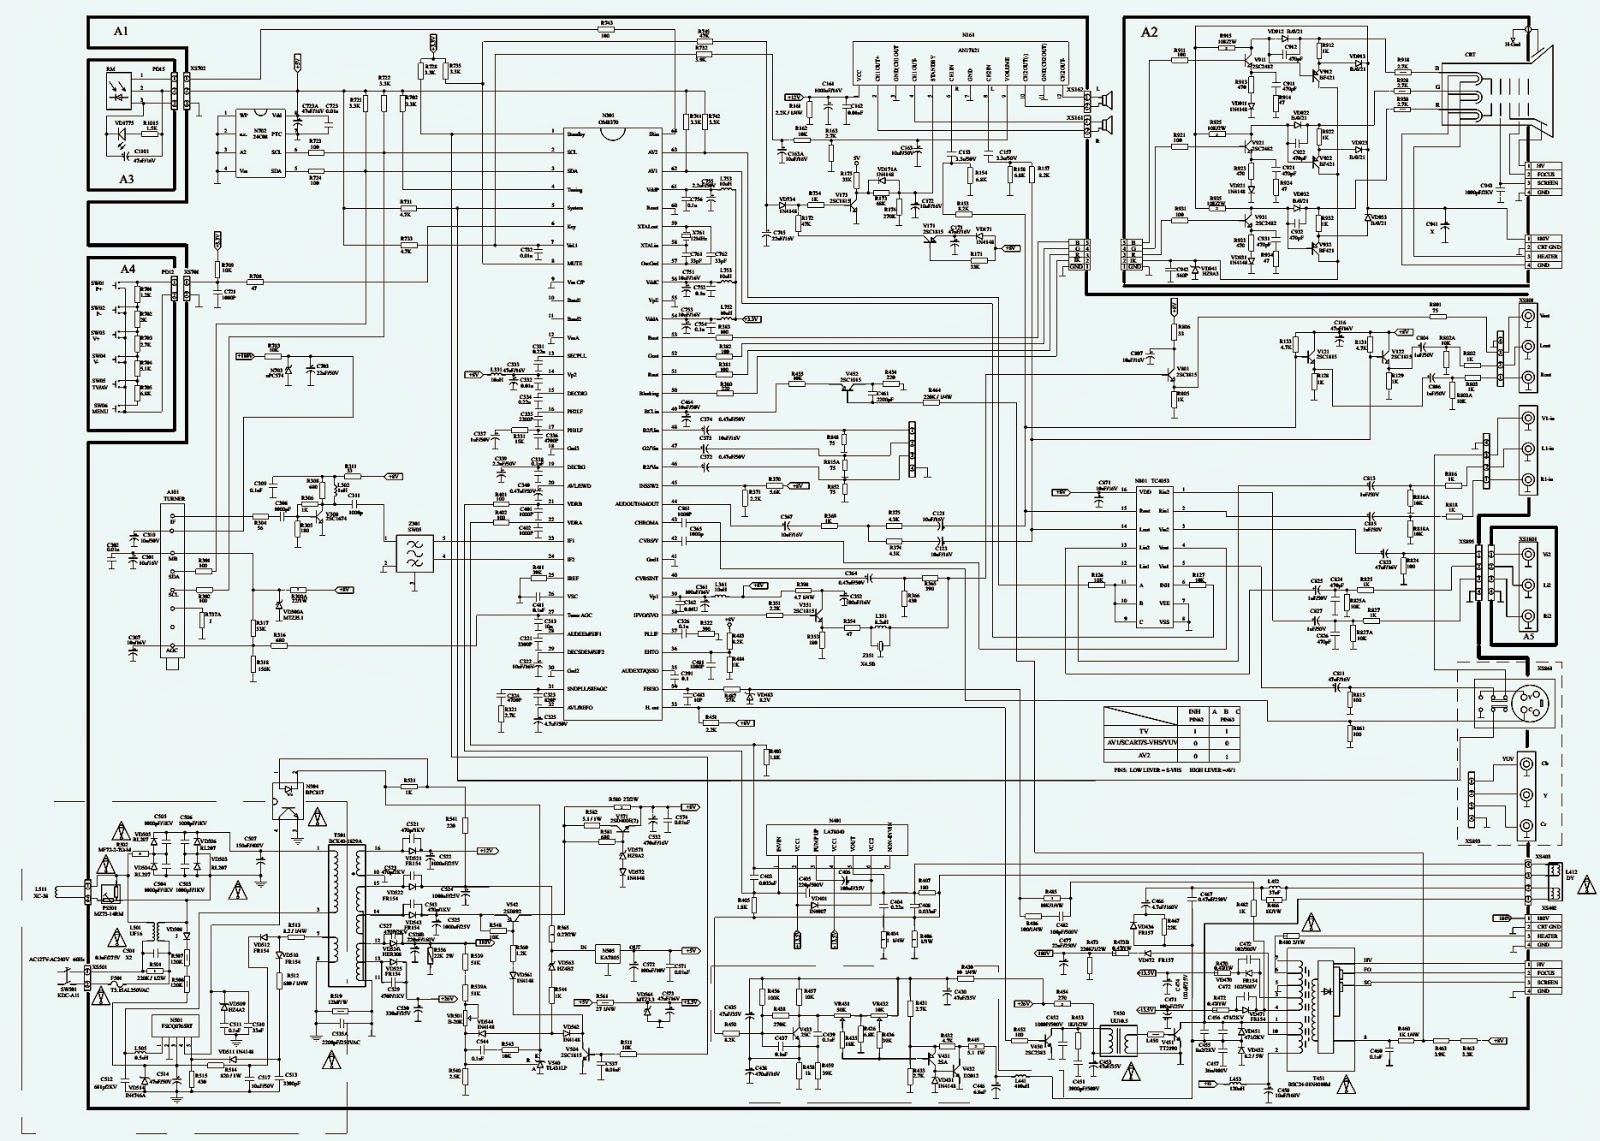 Forum Diagram: PHILCO PHILIPS PH14B CTV CIRCUIT DIAGRAM